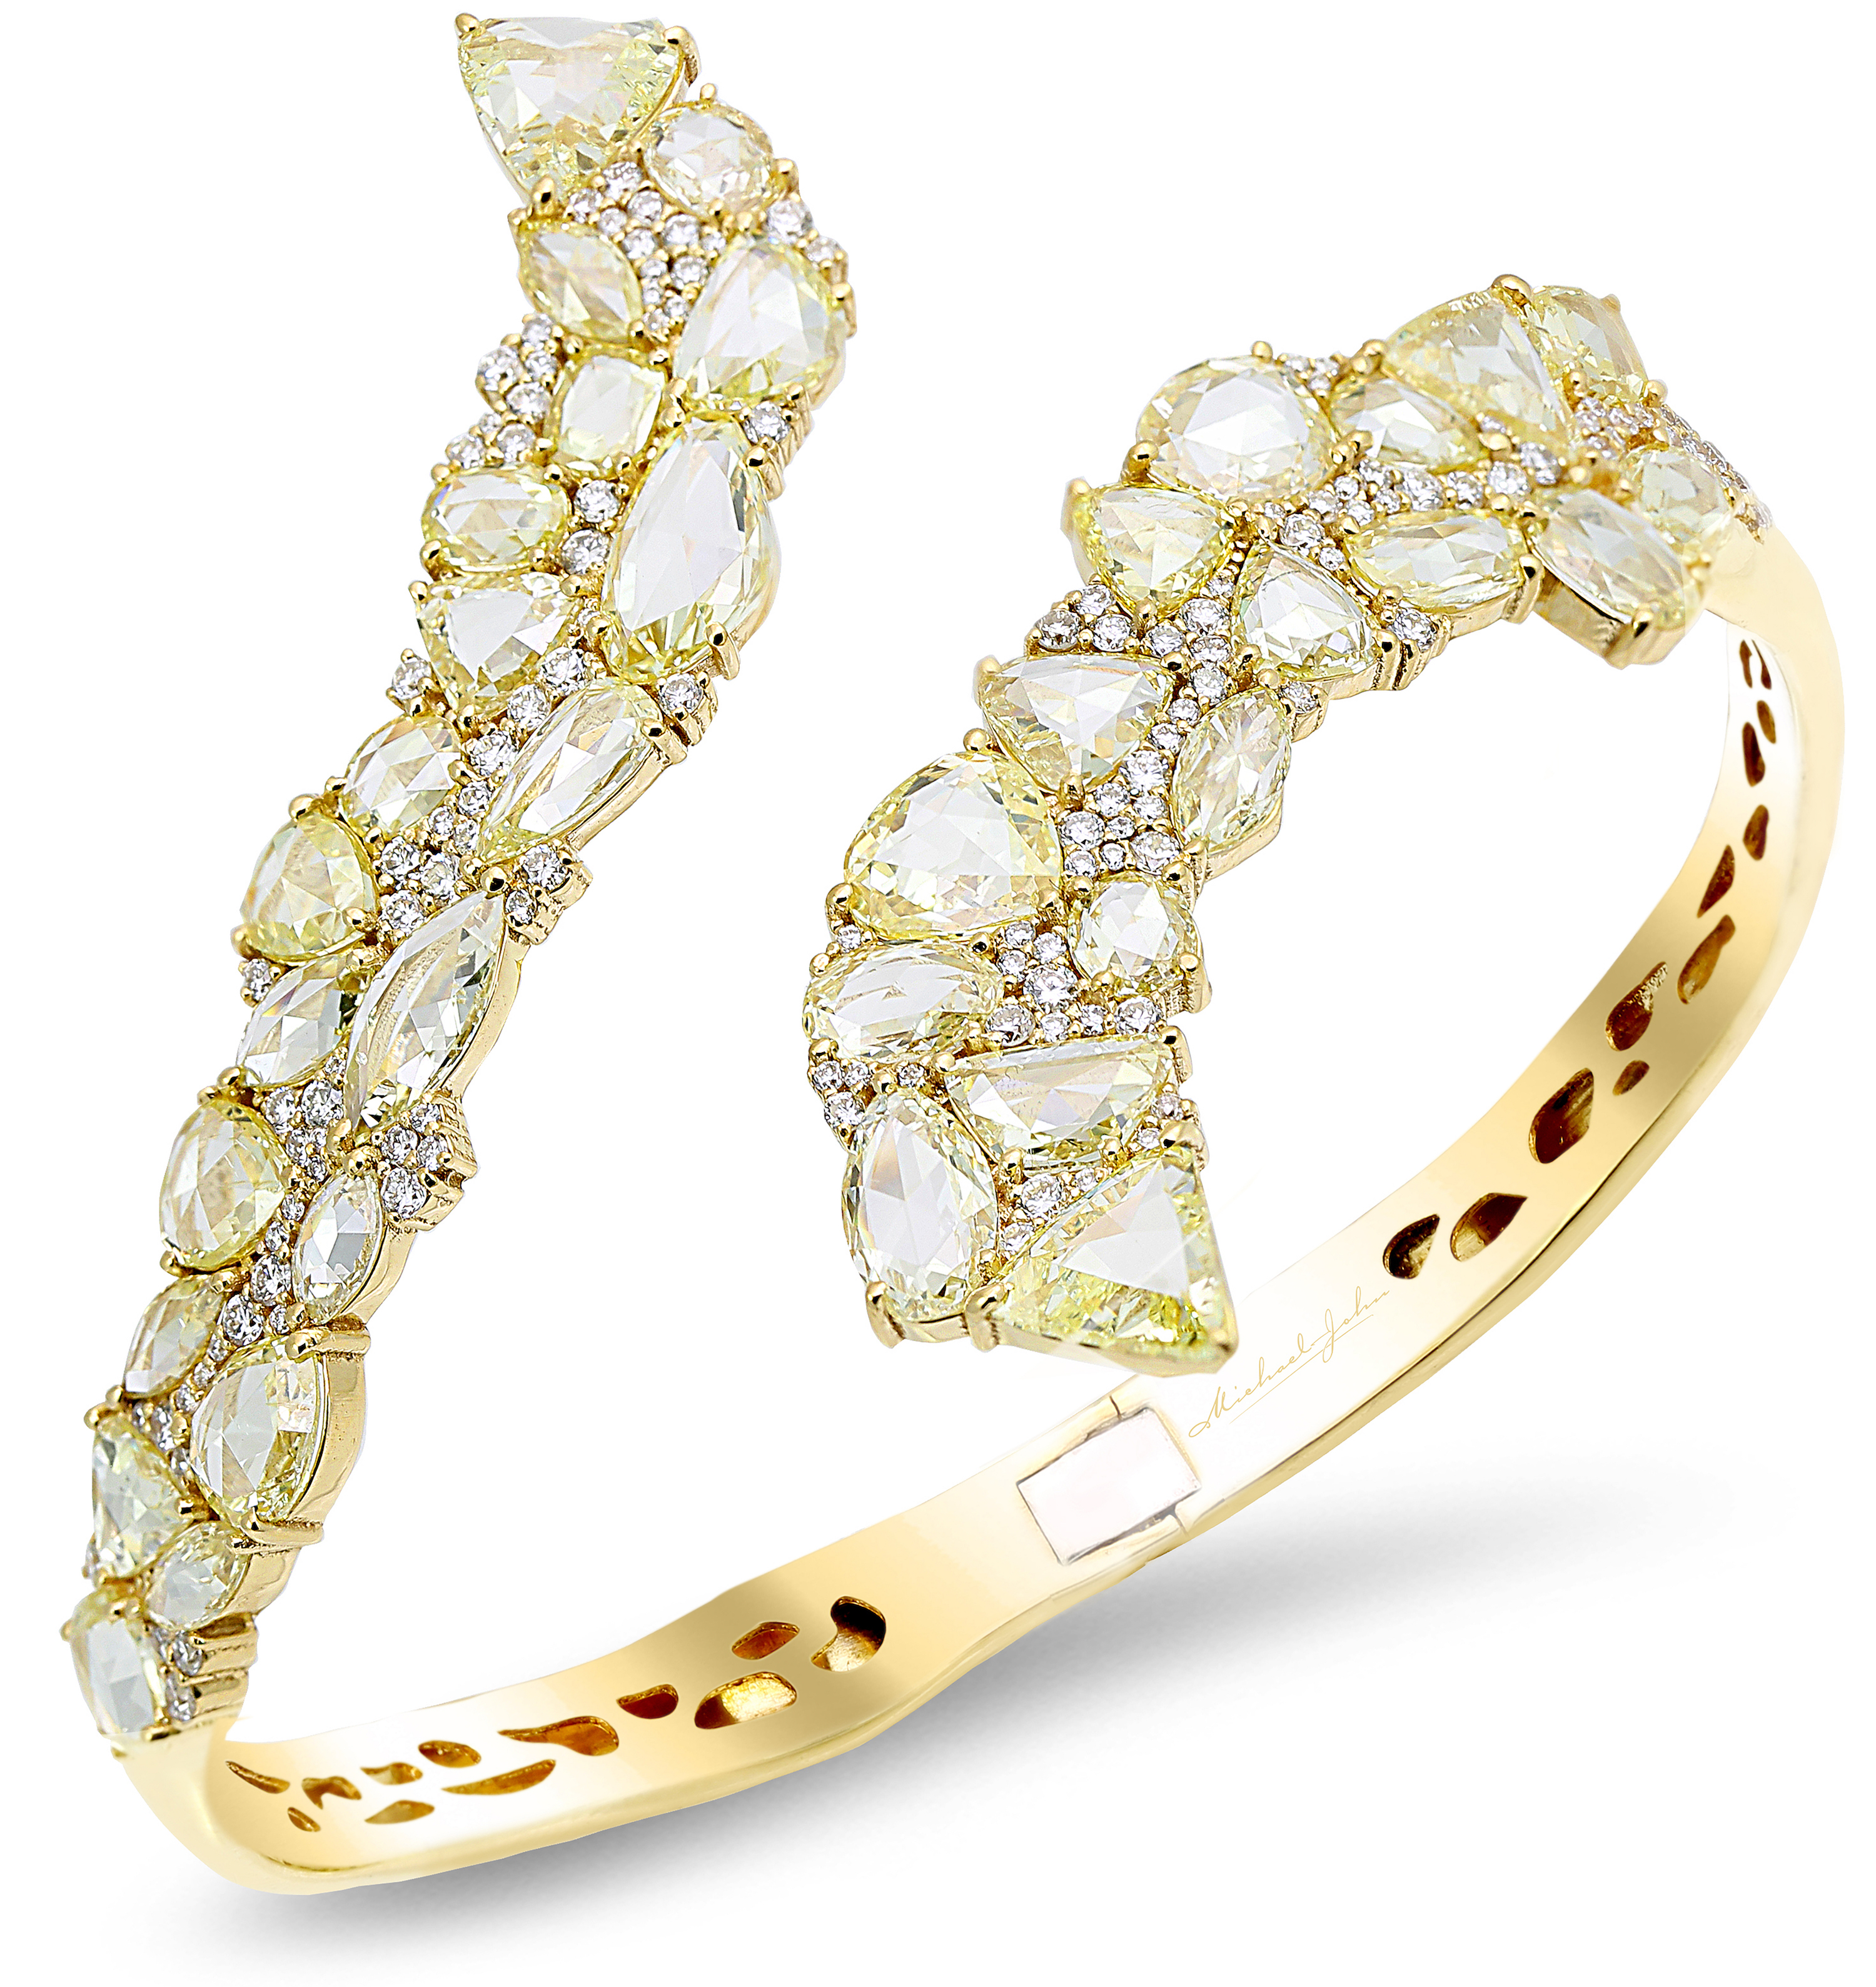 Michael John Jewelry rose-cut diamond bangle | JCK On Your Market